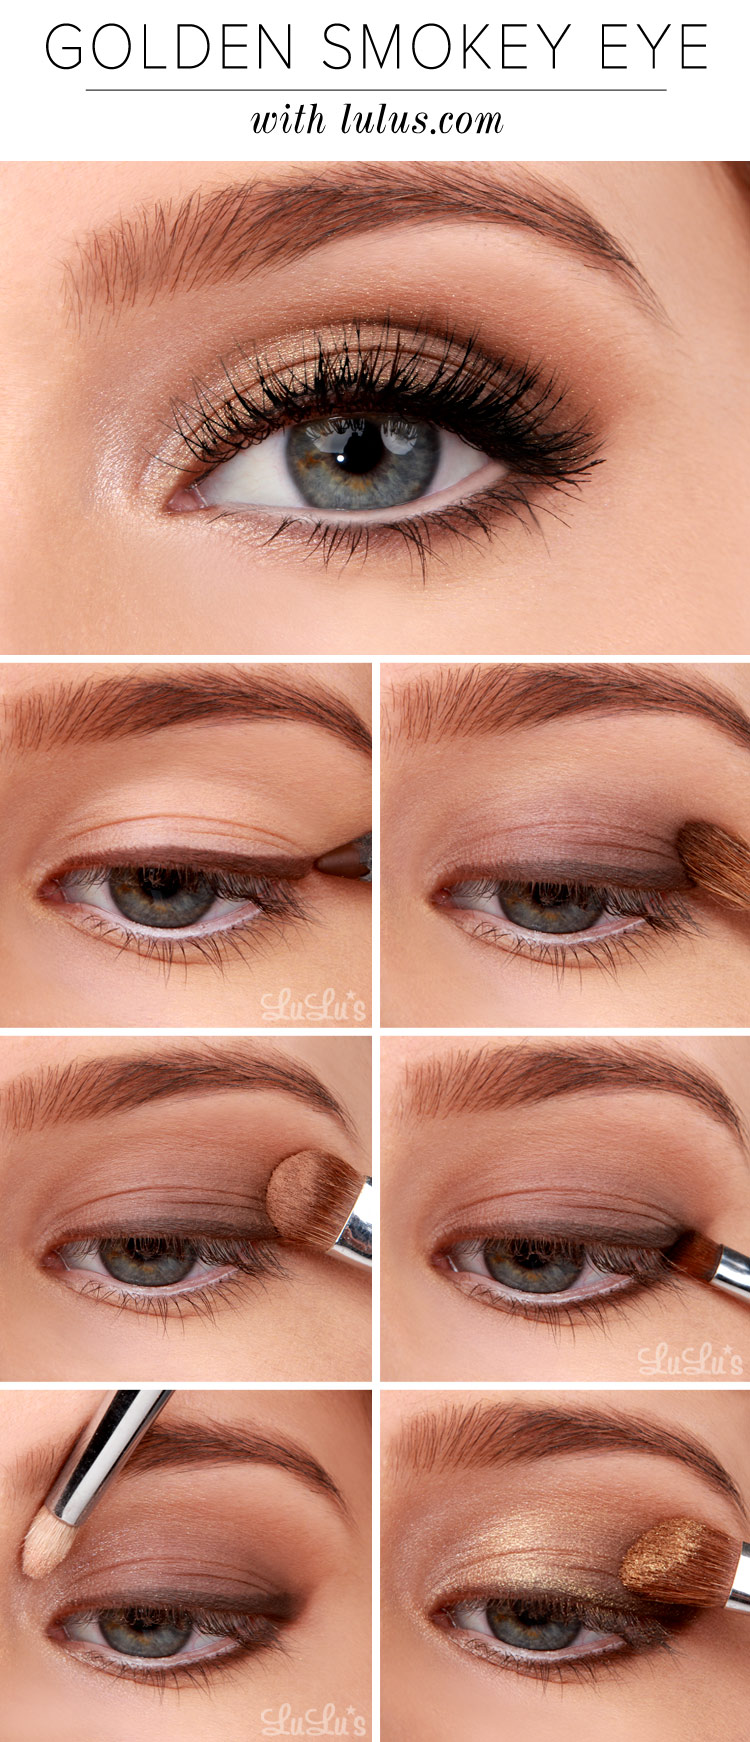 Bronze smokey eye tutorial | missy sue.